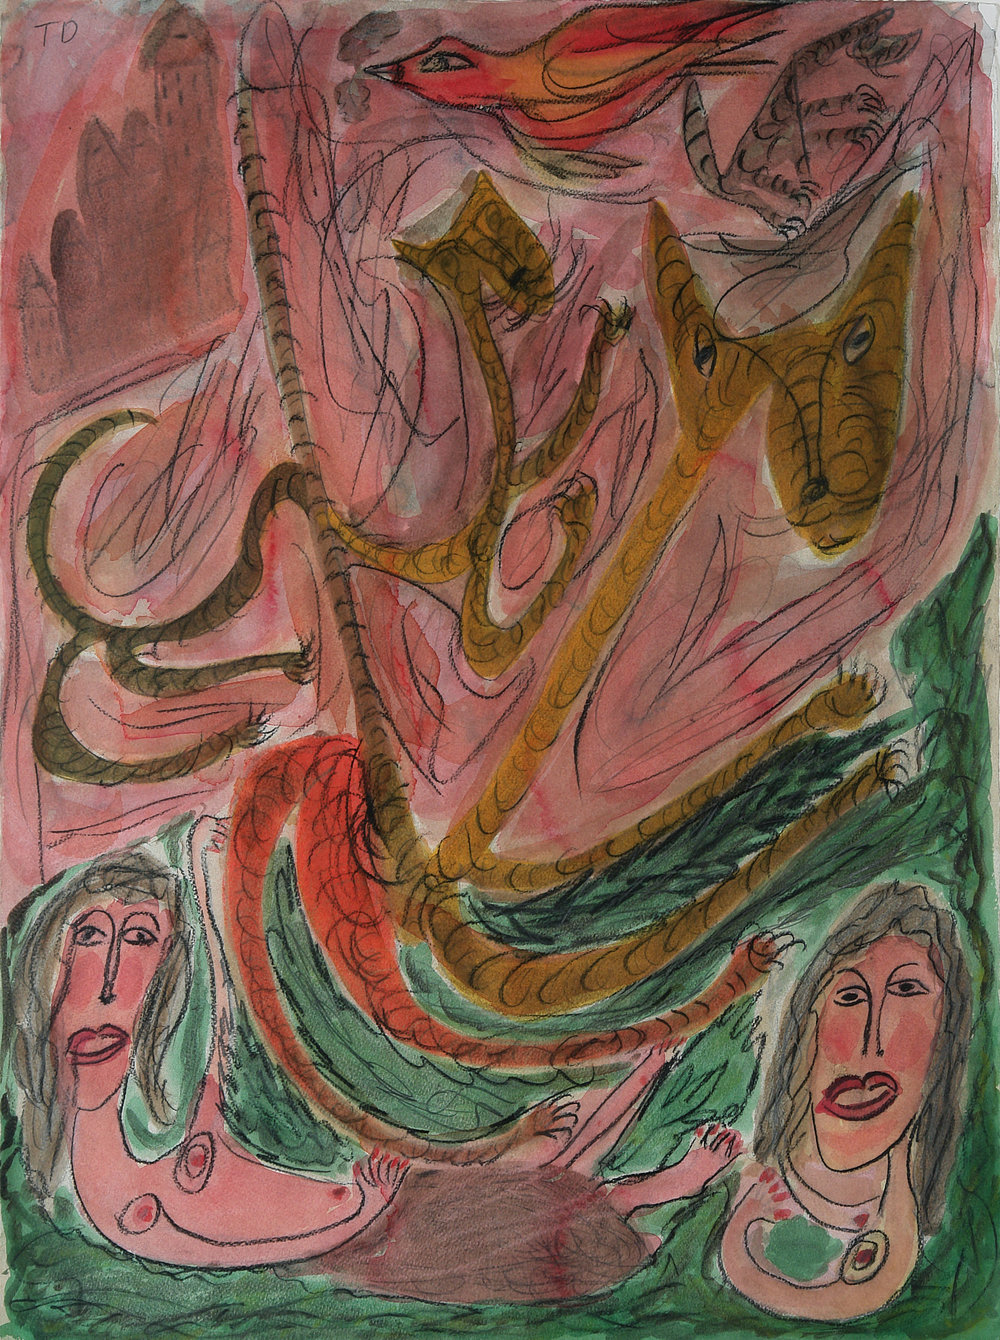 Thornton Dial Sr. (American, 1928-2016).  Jungle Life , 1991. Watercolor and Charcoal on paper, 30 x 22 in. Intuit: The Center for Intuitive and Outsider Art, gift of Lael and Eugenie Johnson, 2006.15  ©  2017 Estate of Thornton Dial / Artists Rights Society (ARS), New York